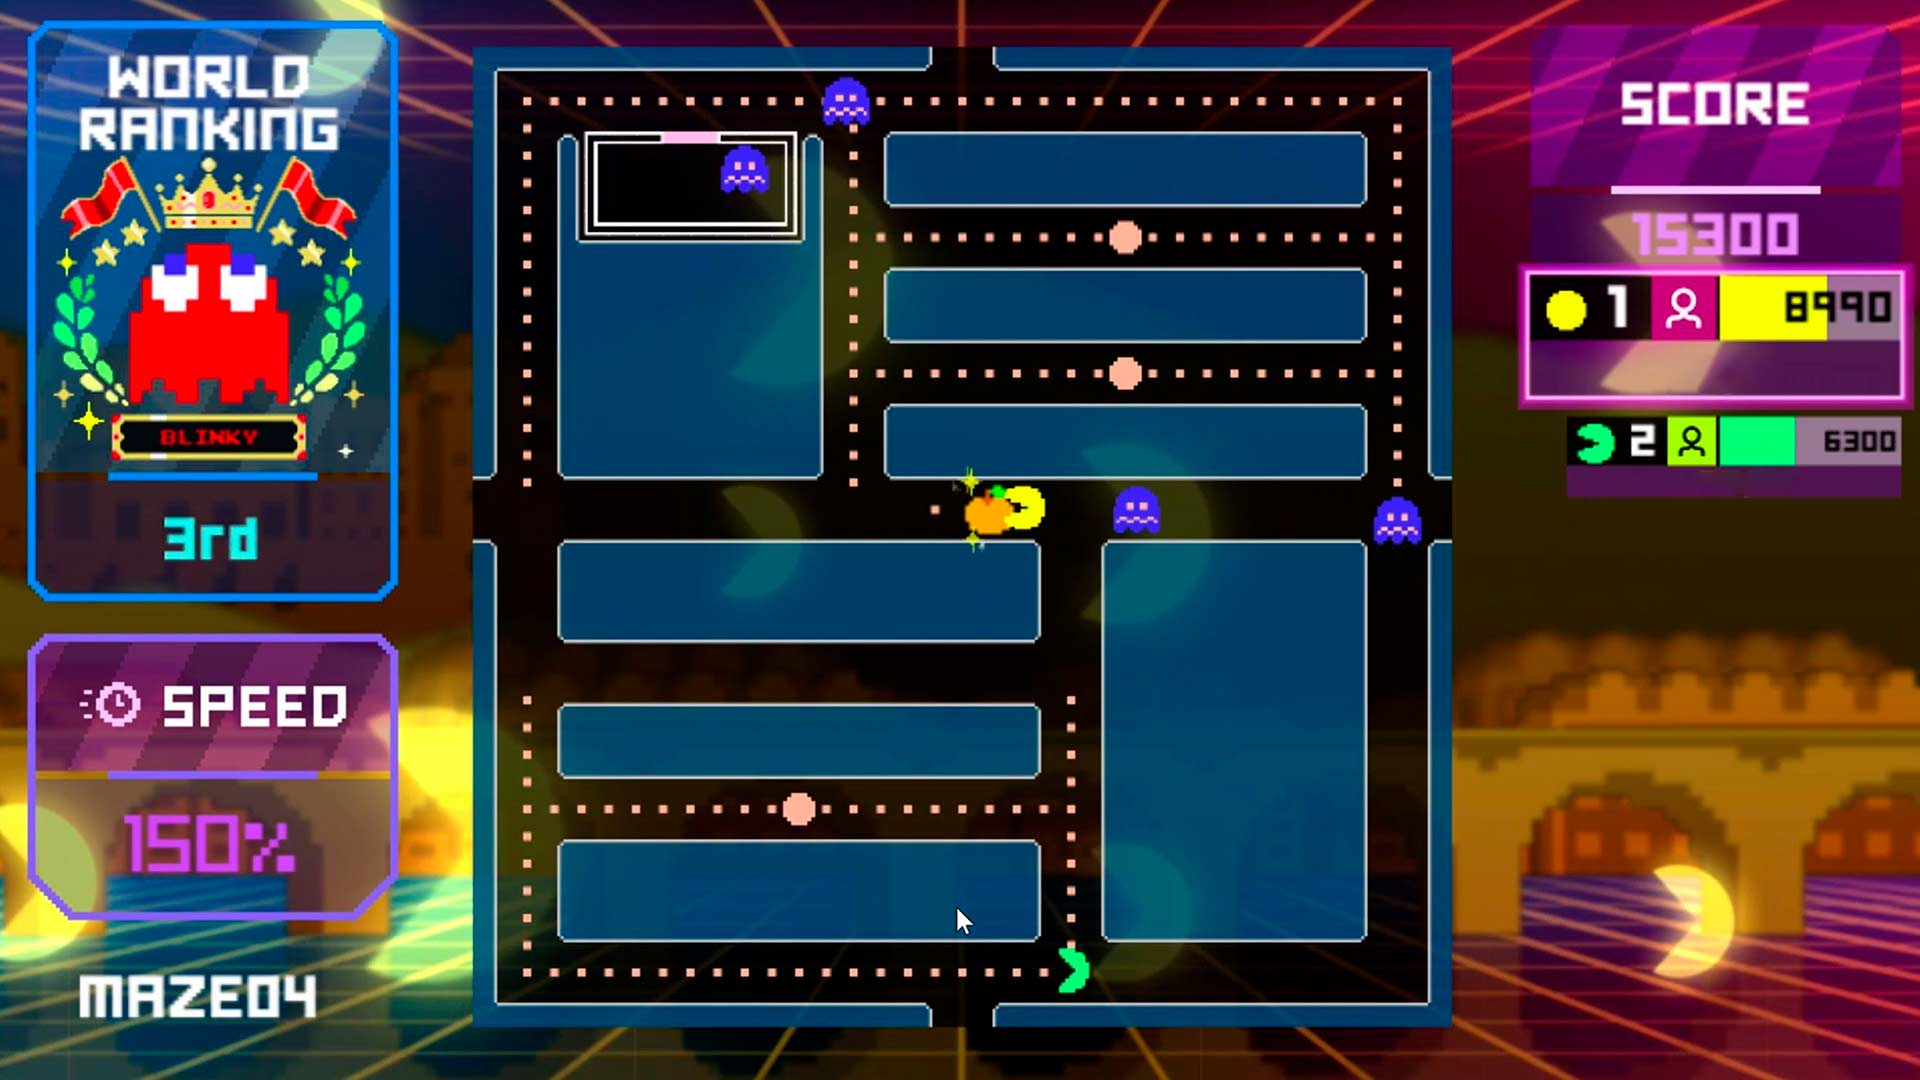 Players work together to get a high score in Endless Mode